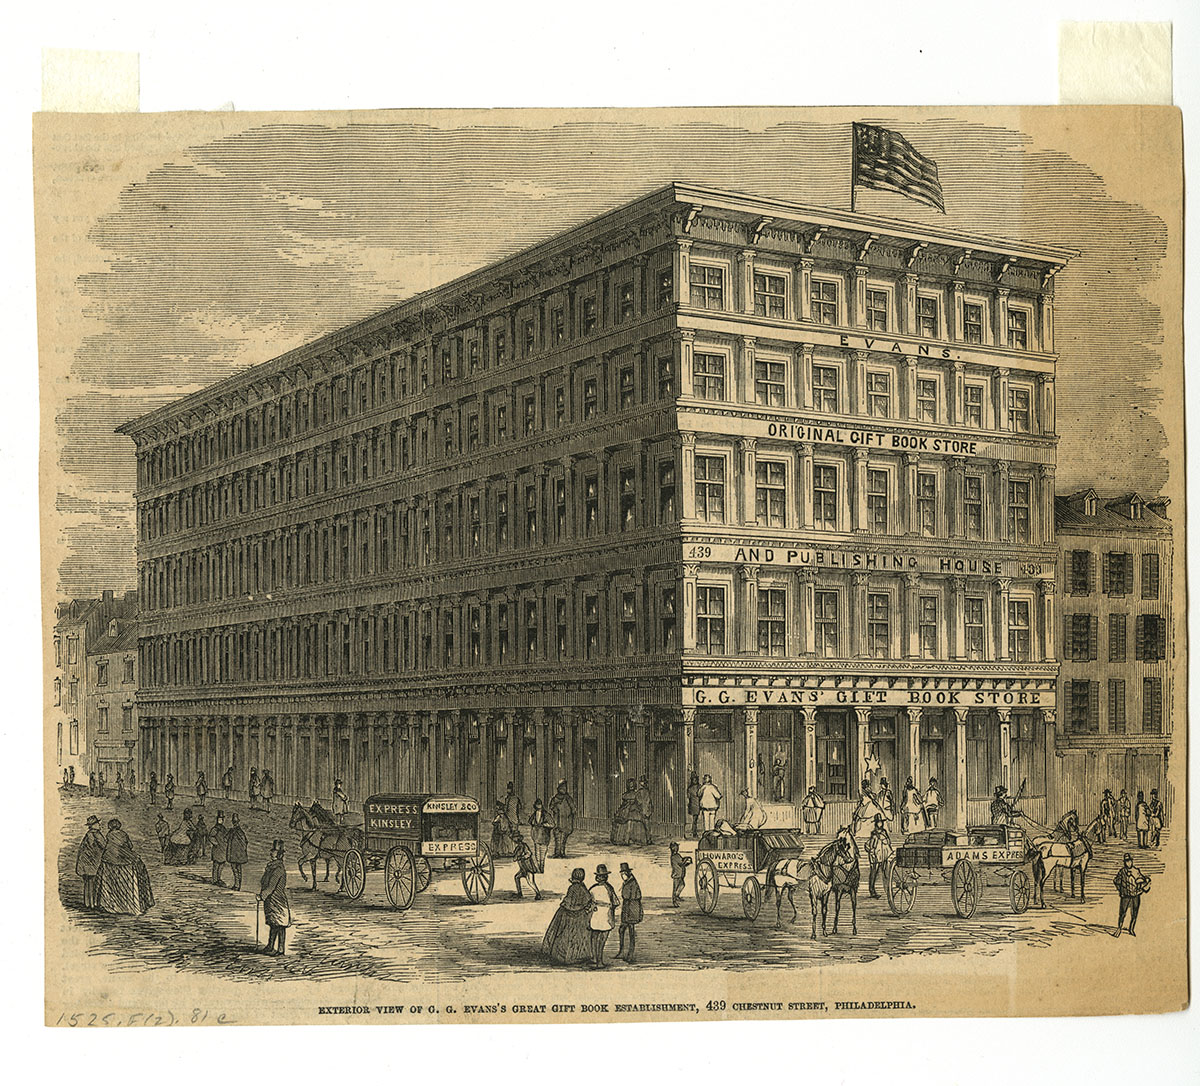 Exterior View of G.G. Evans's Great Gift Book Establishment, 439 Chestnut Street (Philadelphia. ca. 1860).